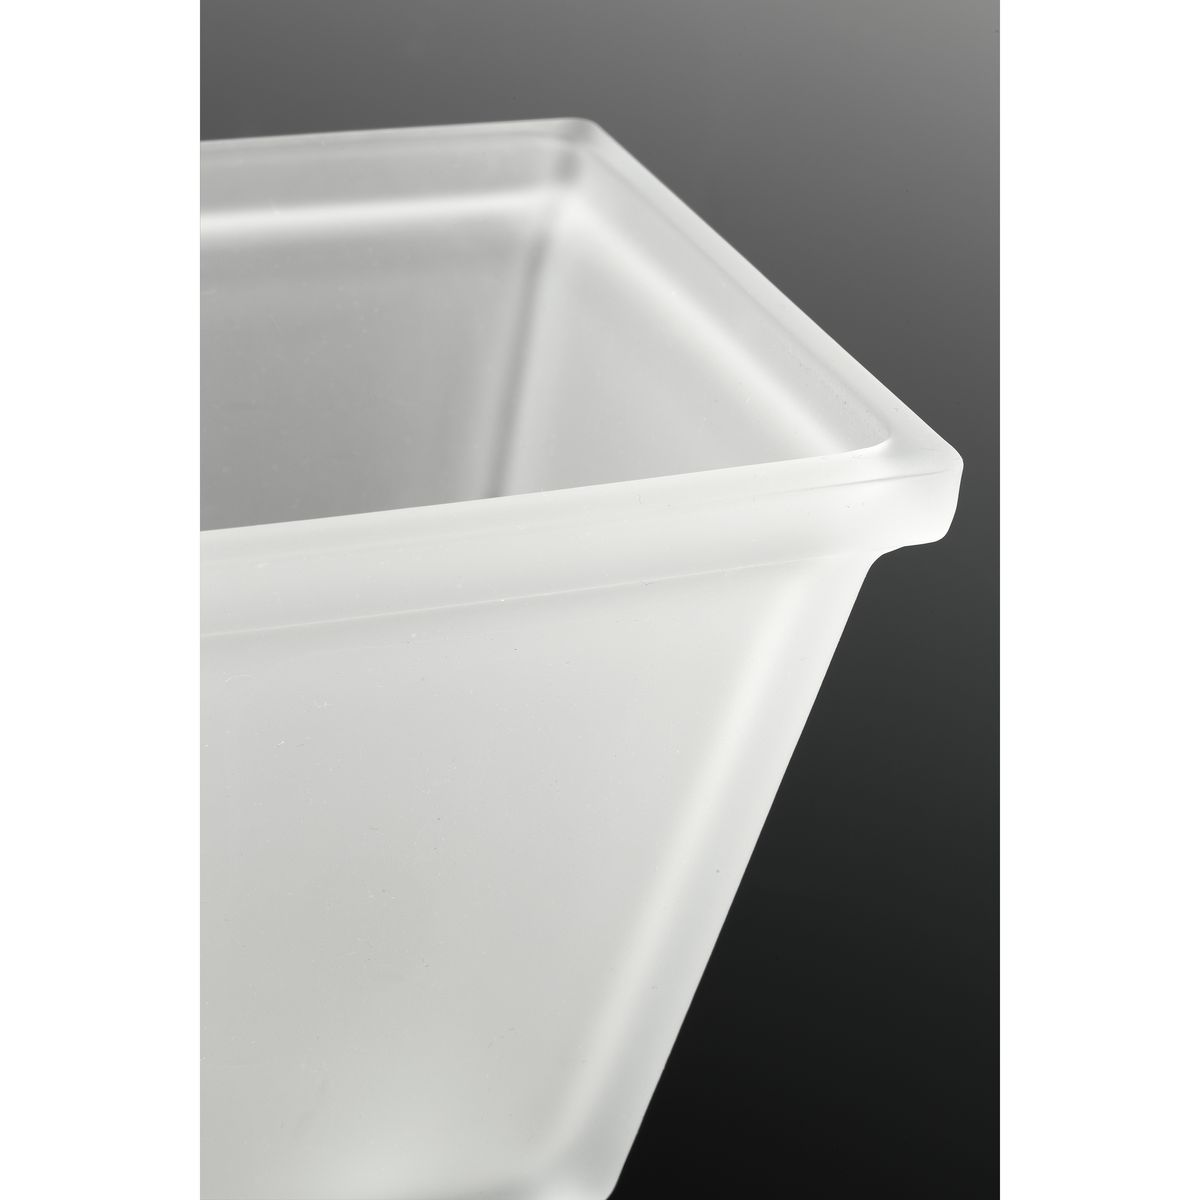 Clifton Heights Collection Four-Light Bath & Vanity